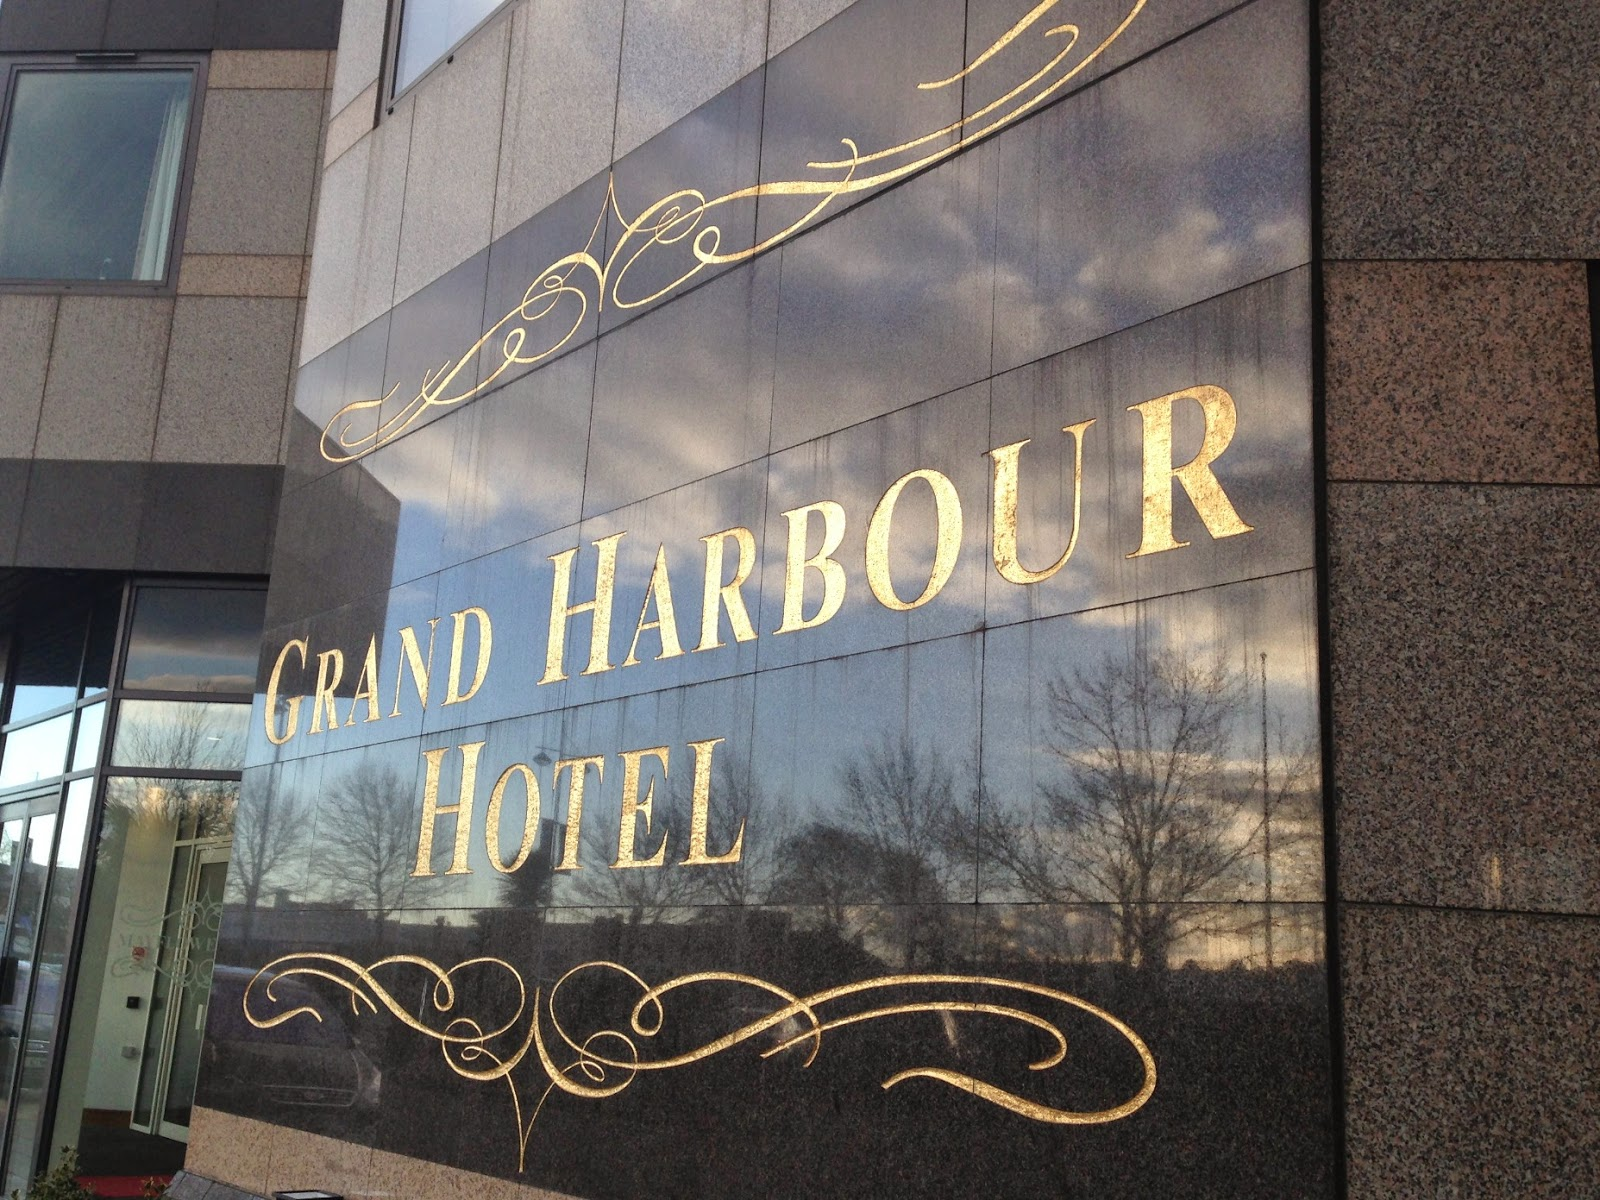 Grand Harbour Hotel sign